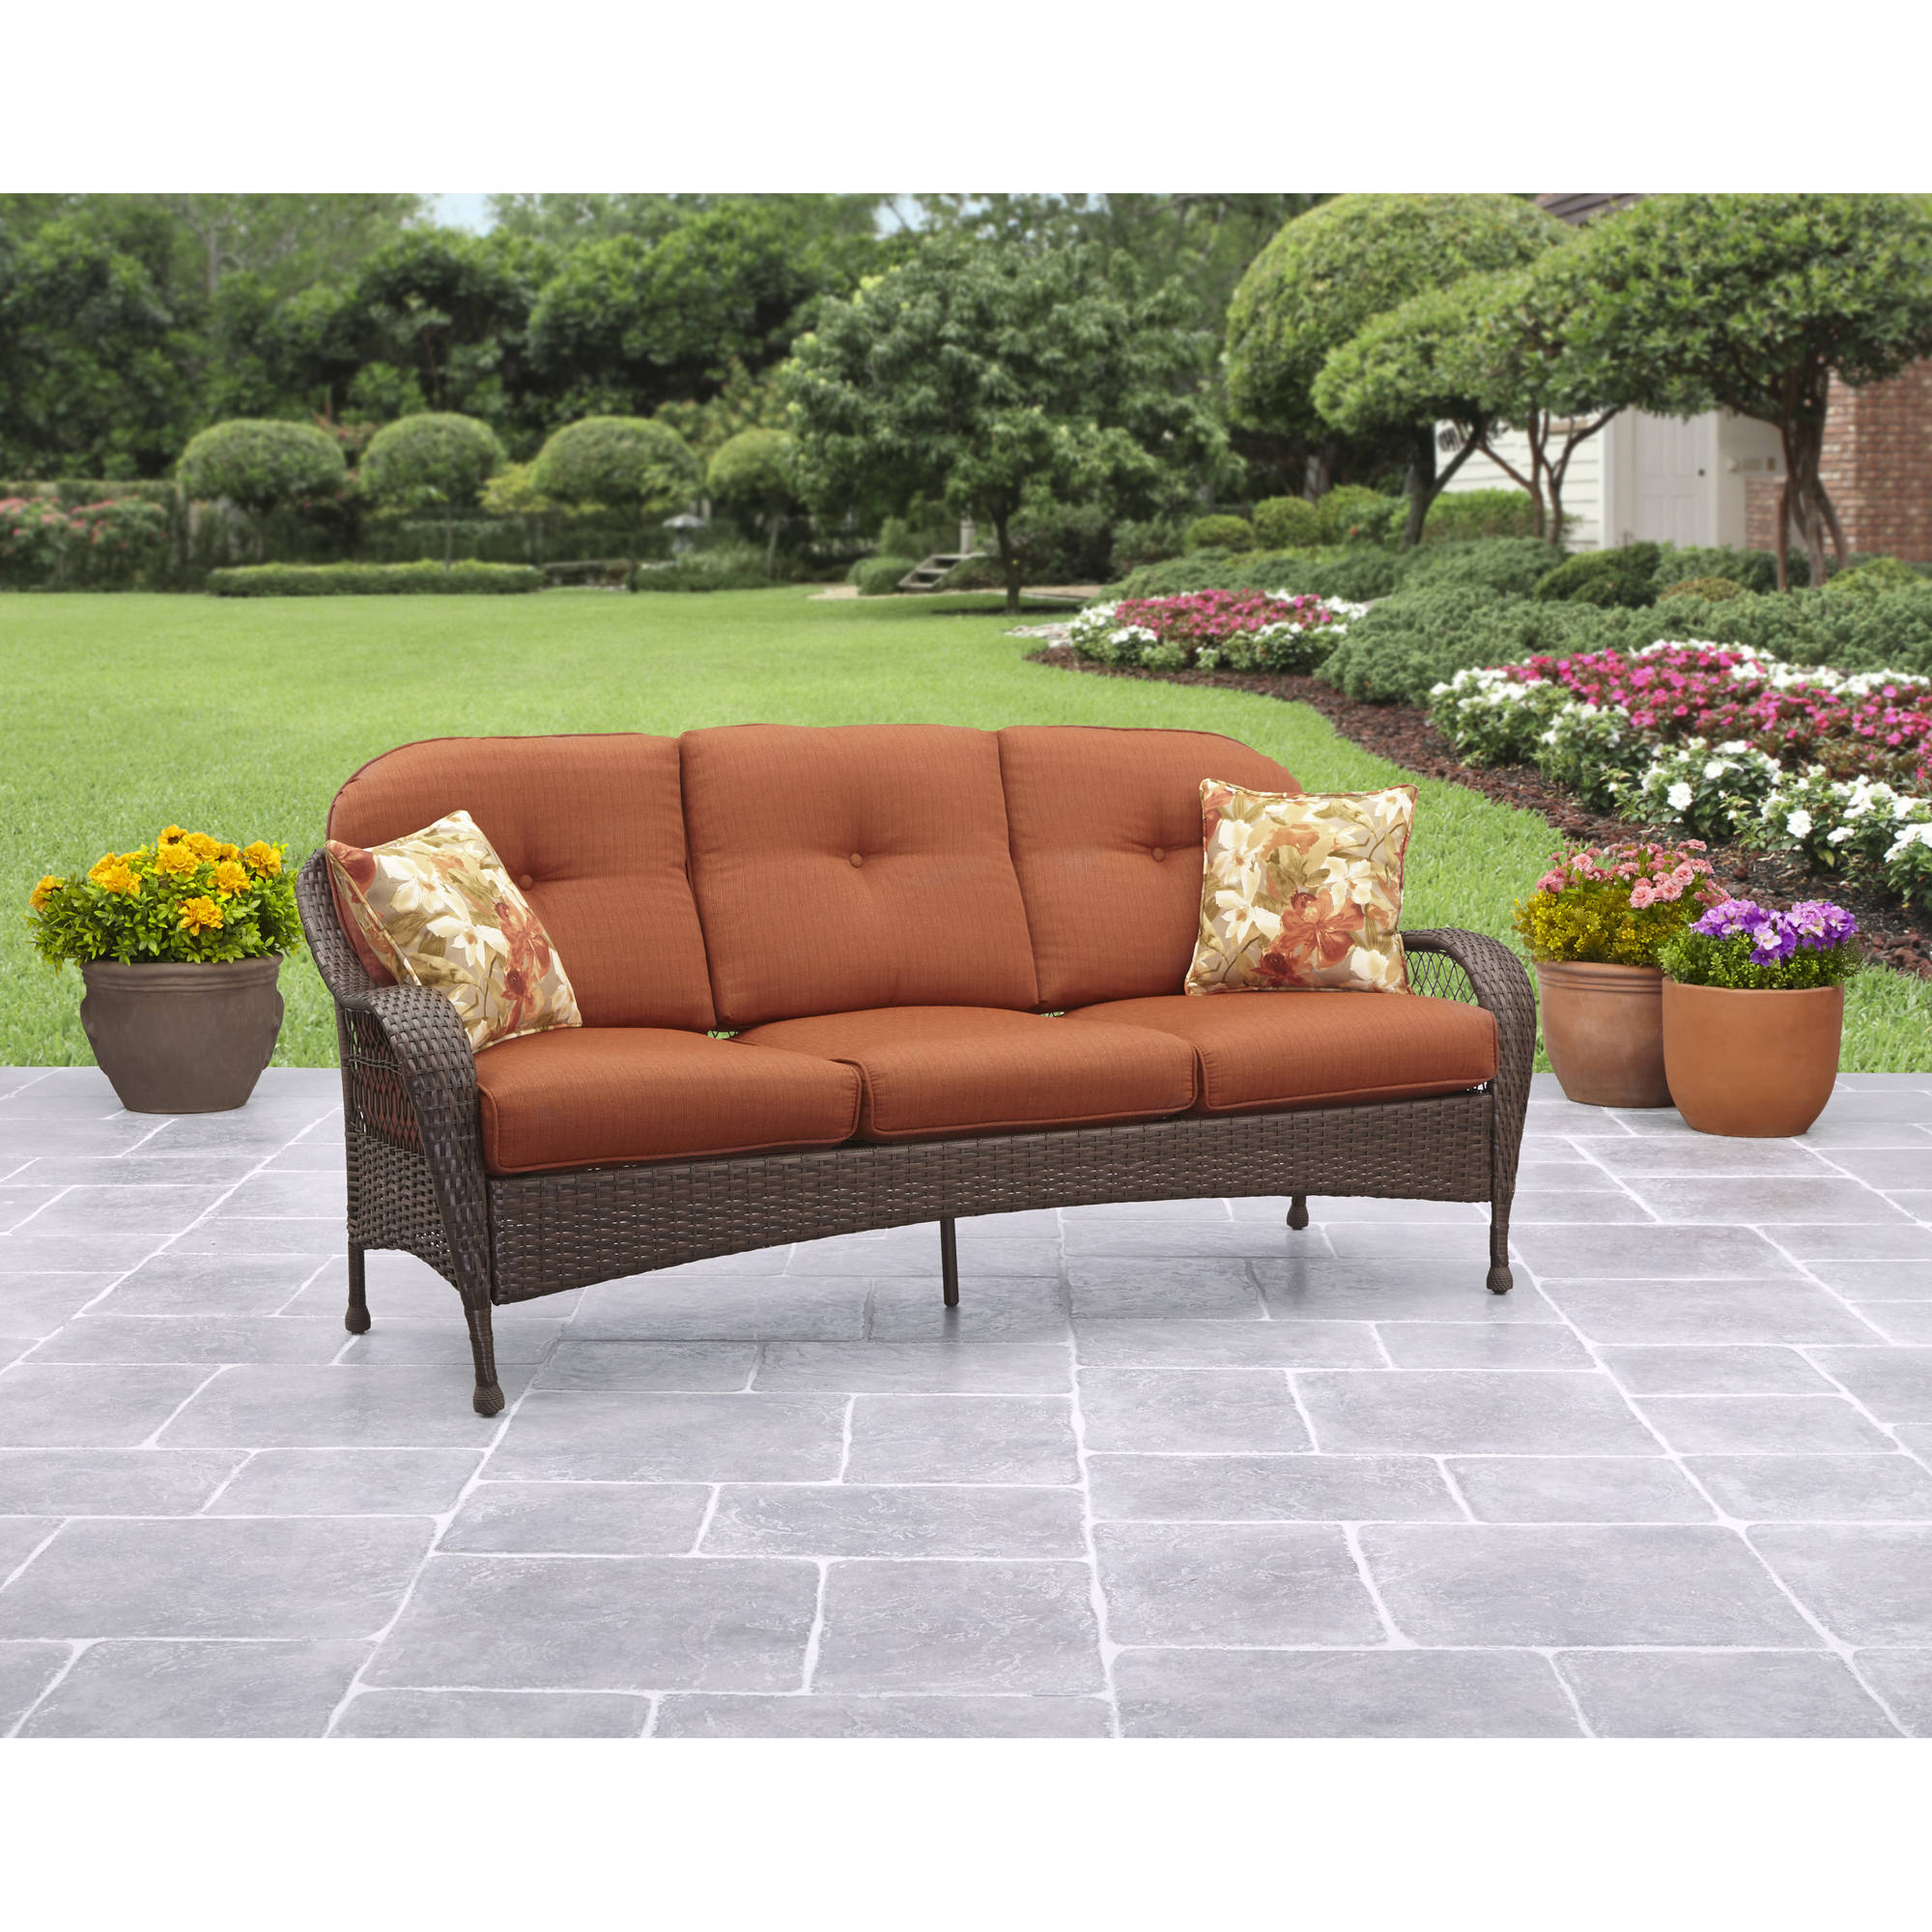 Home And Garden Furniture Collection Better Homes And Gardens Cadence Wicker 3Piece Outdoor Sectional .